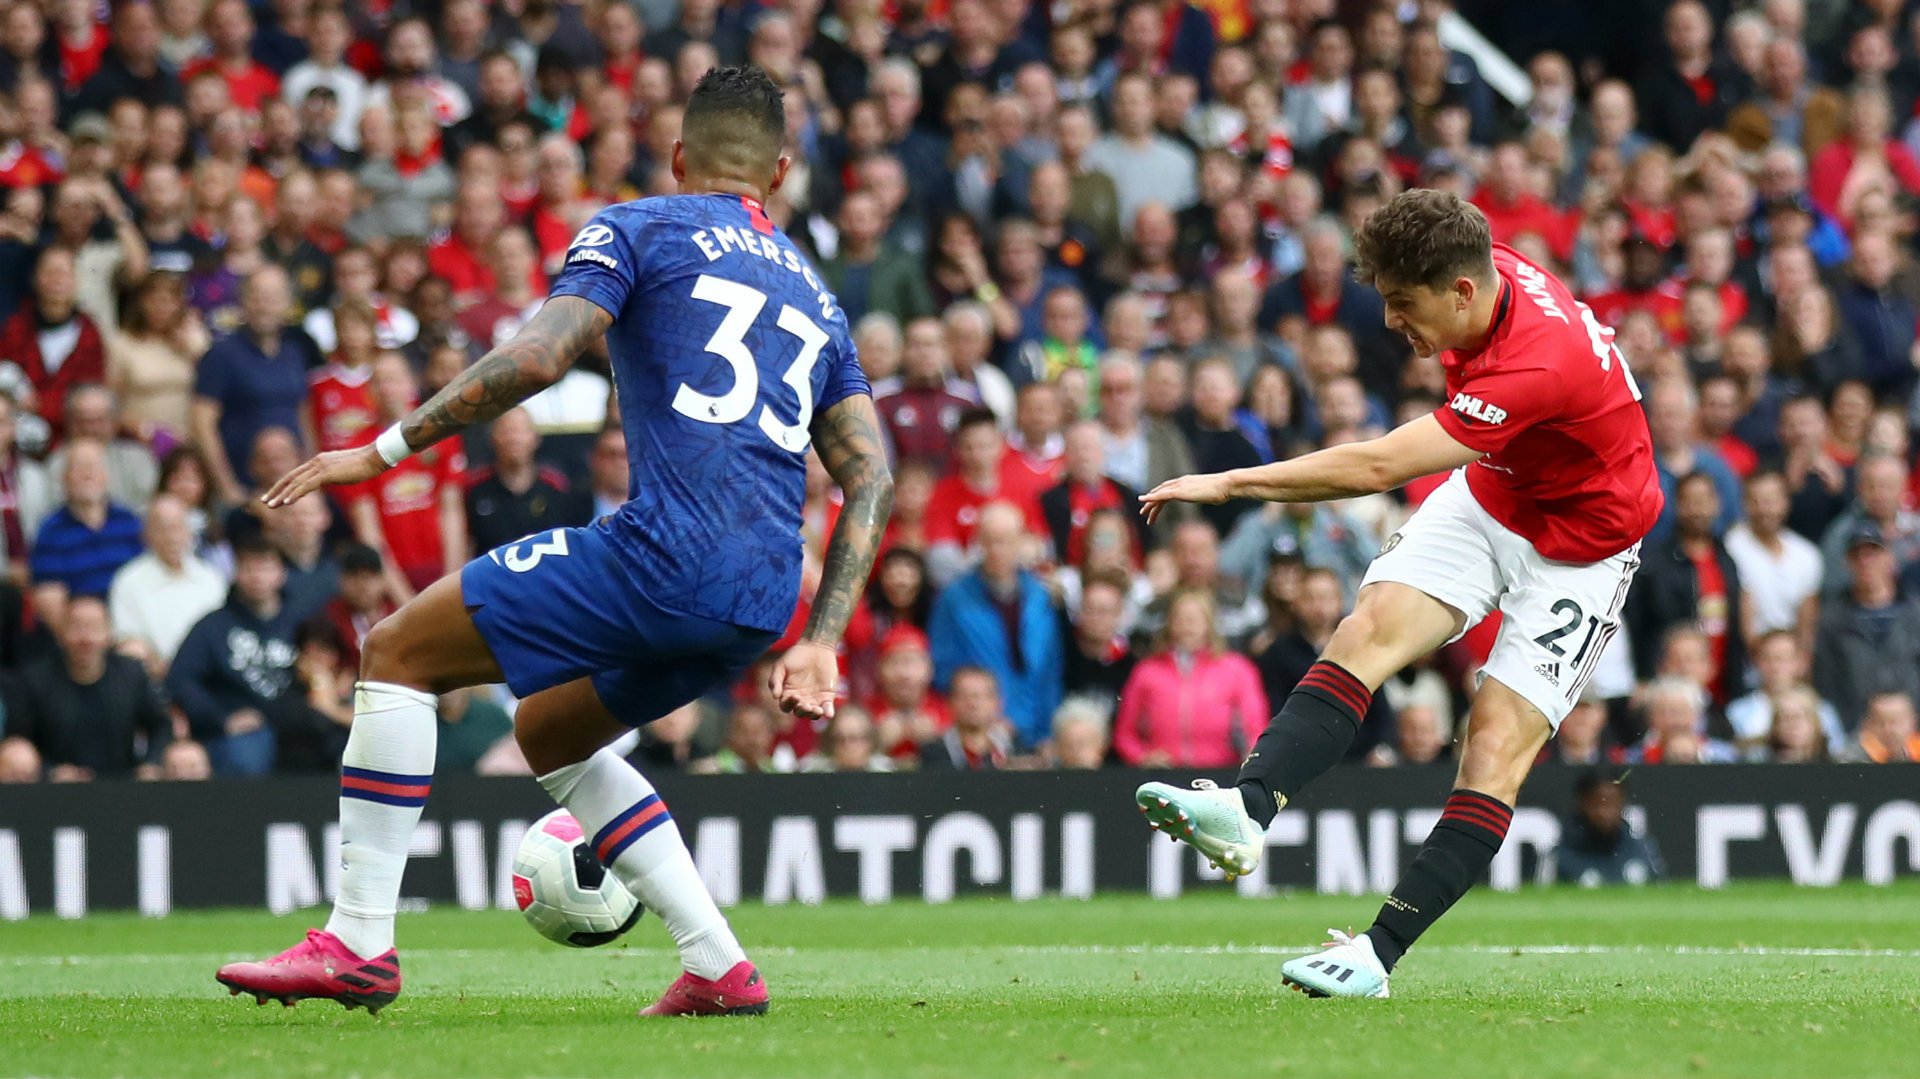 Daniel James Manchester United vs Chelsea 2019-20